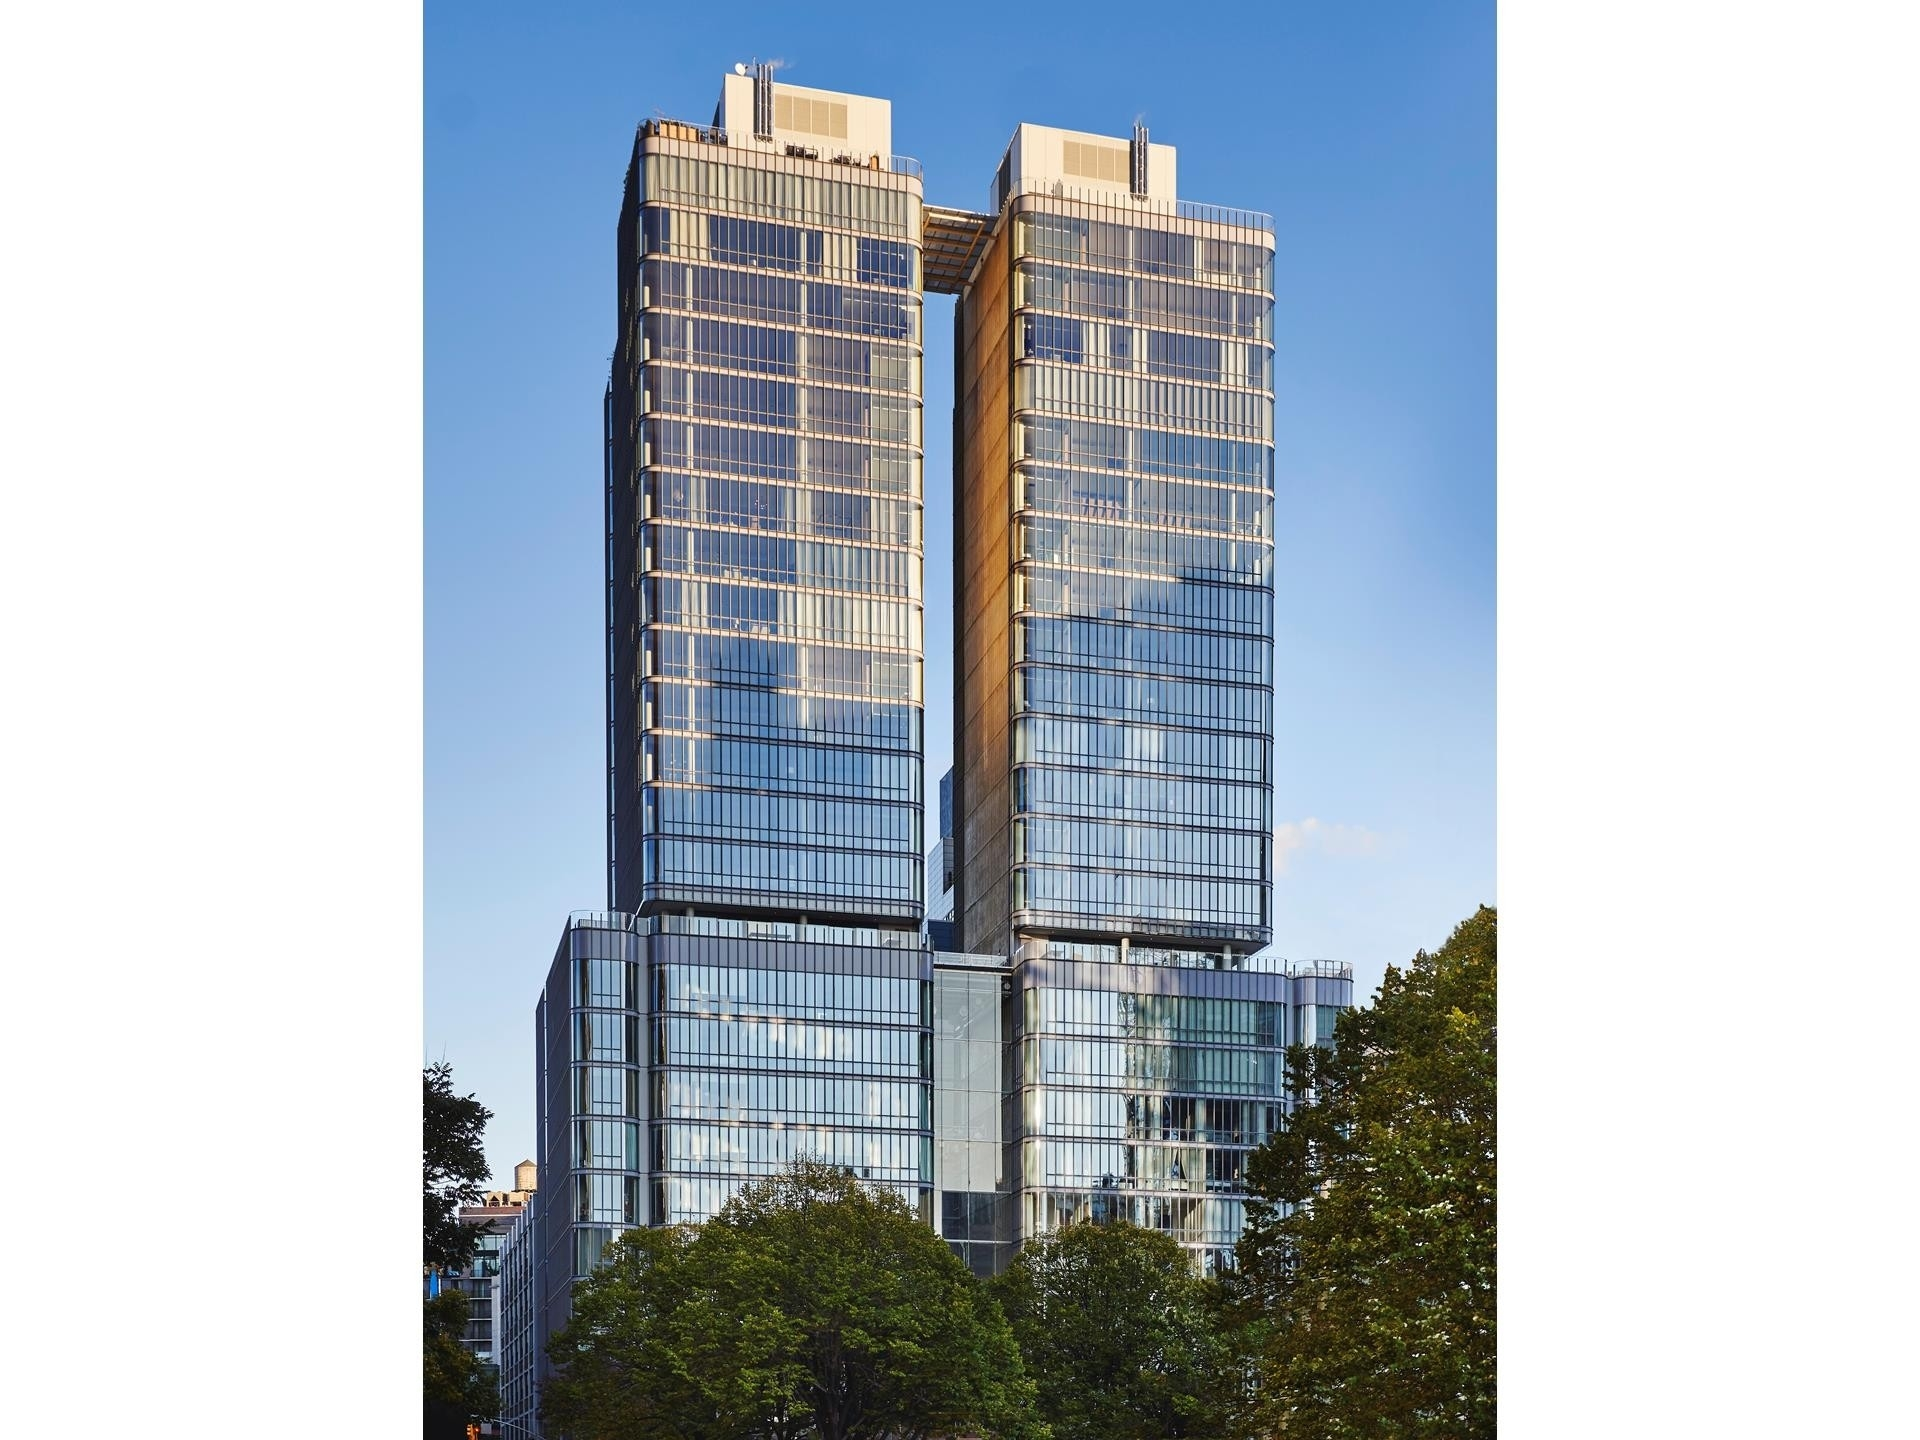 1. Condominiums at 565 Broome St, N7B Hudson Square, New York